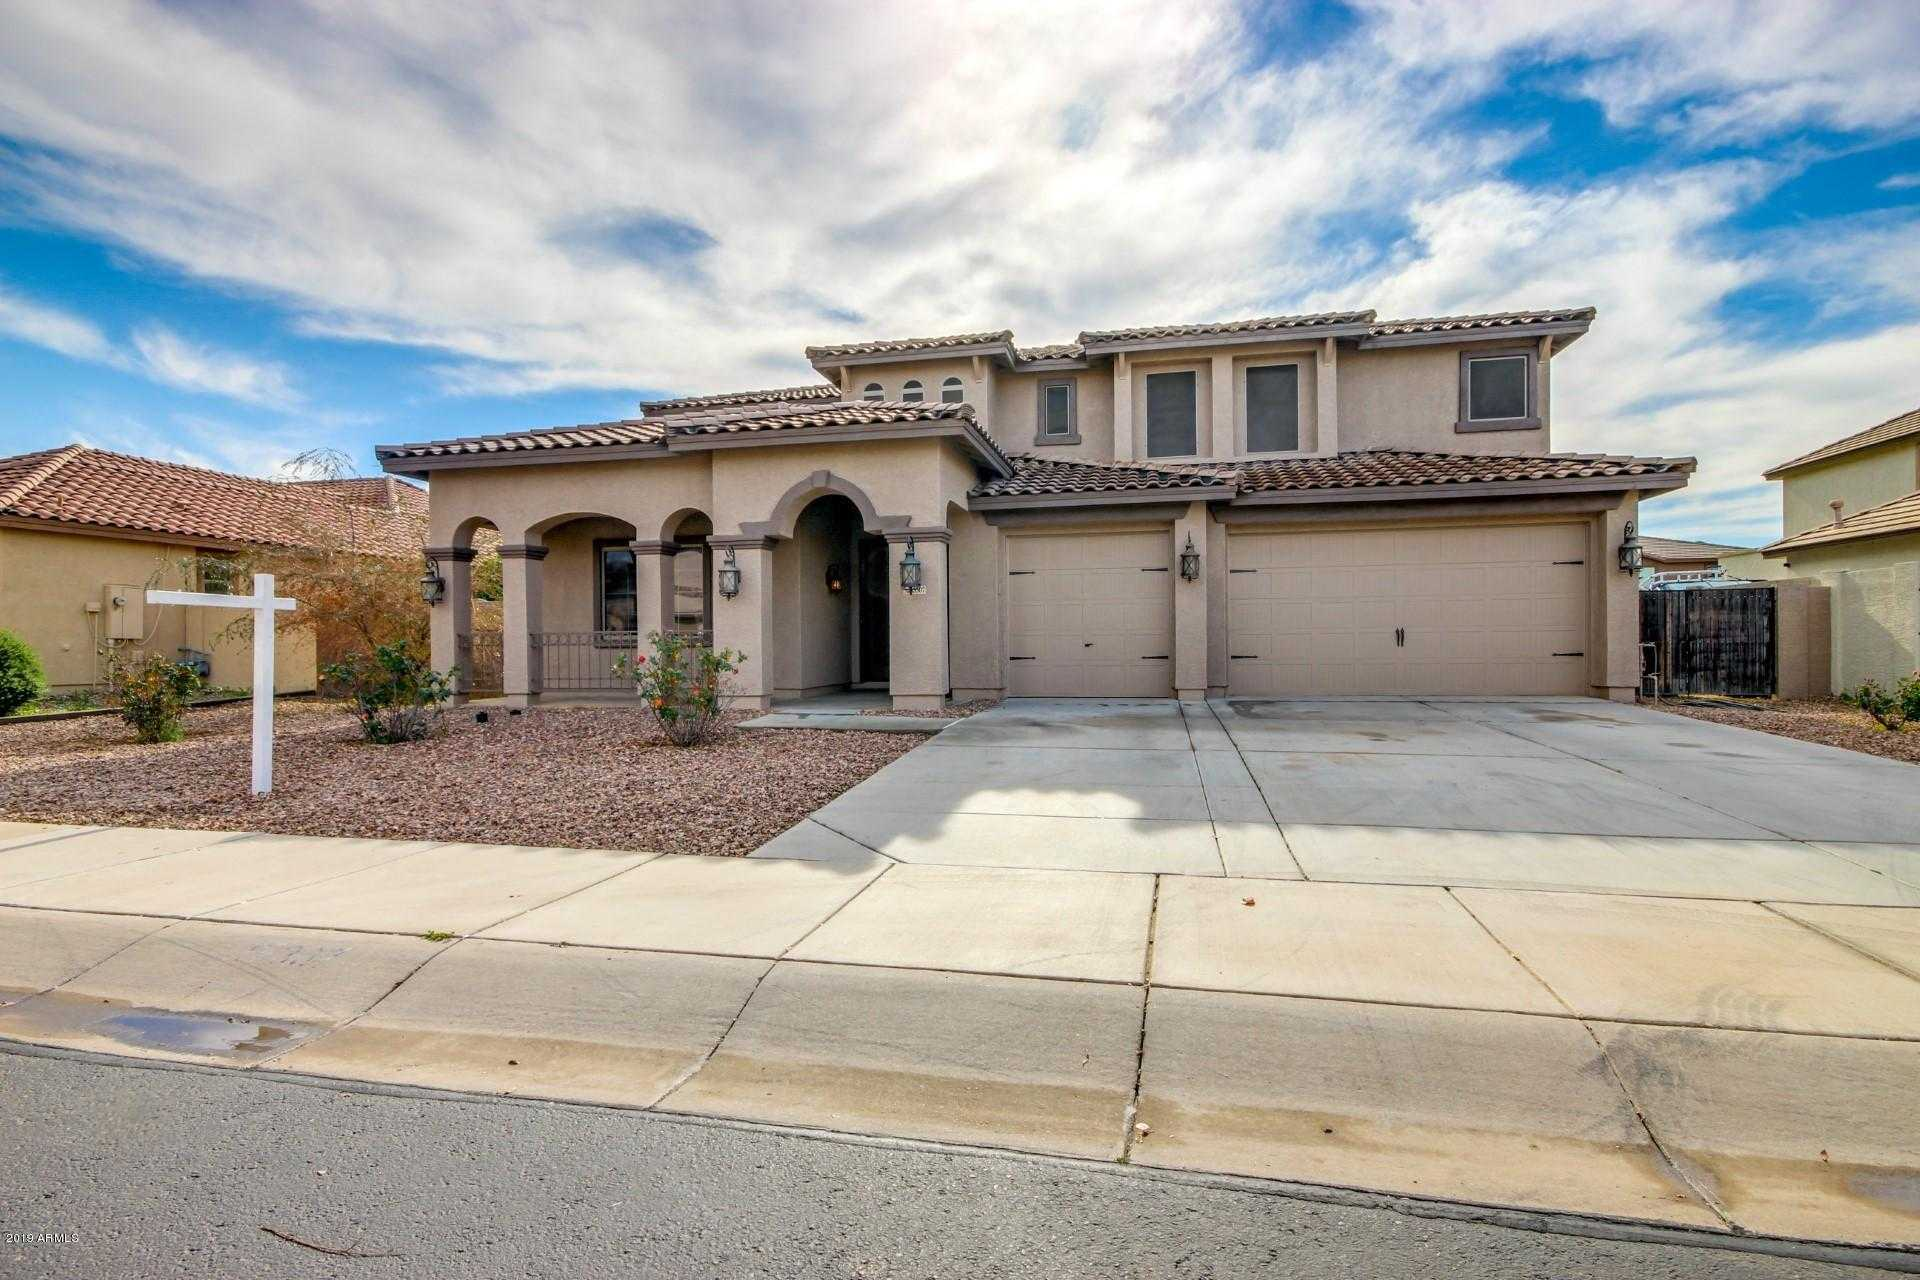 $400,000 - 7Br/5Ba - Home for Sale in Palm Valley Phase 5 Parcel 6, Goodyear